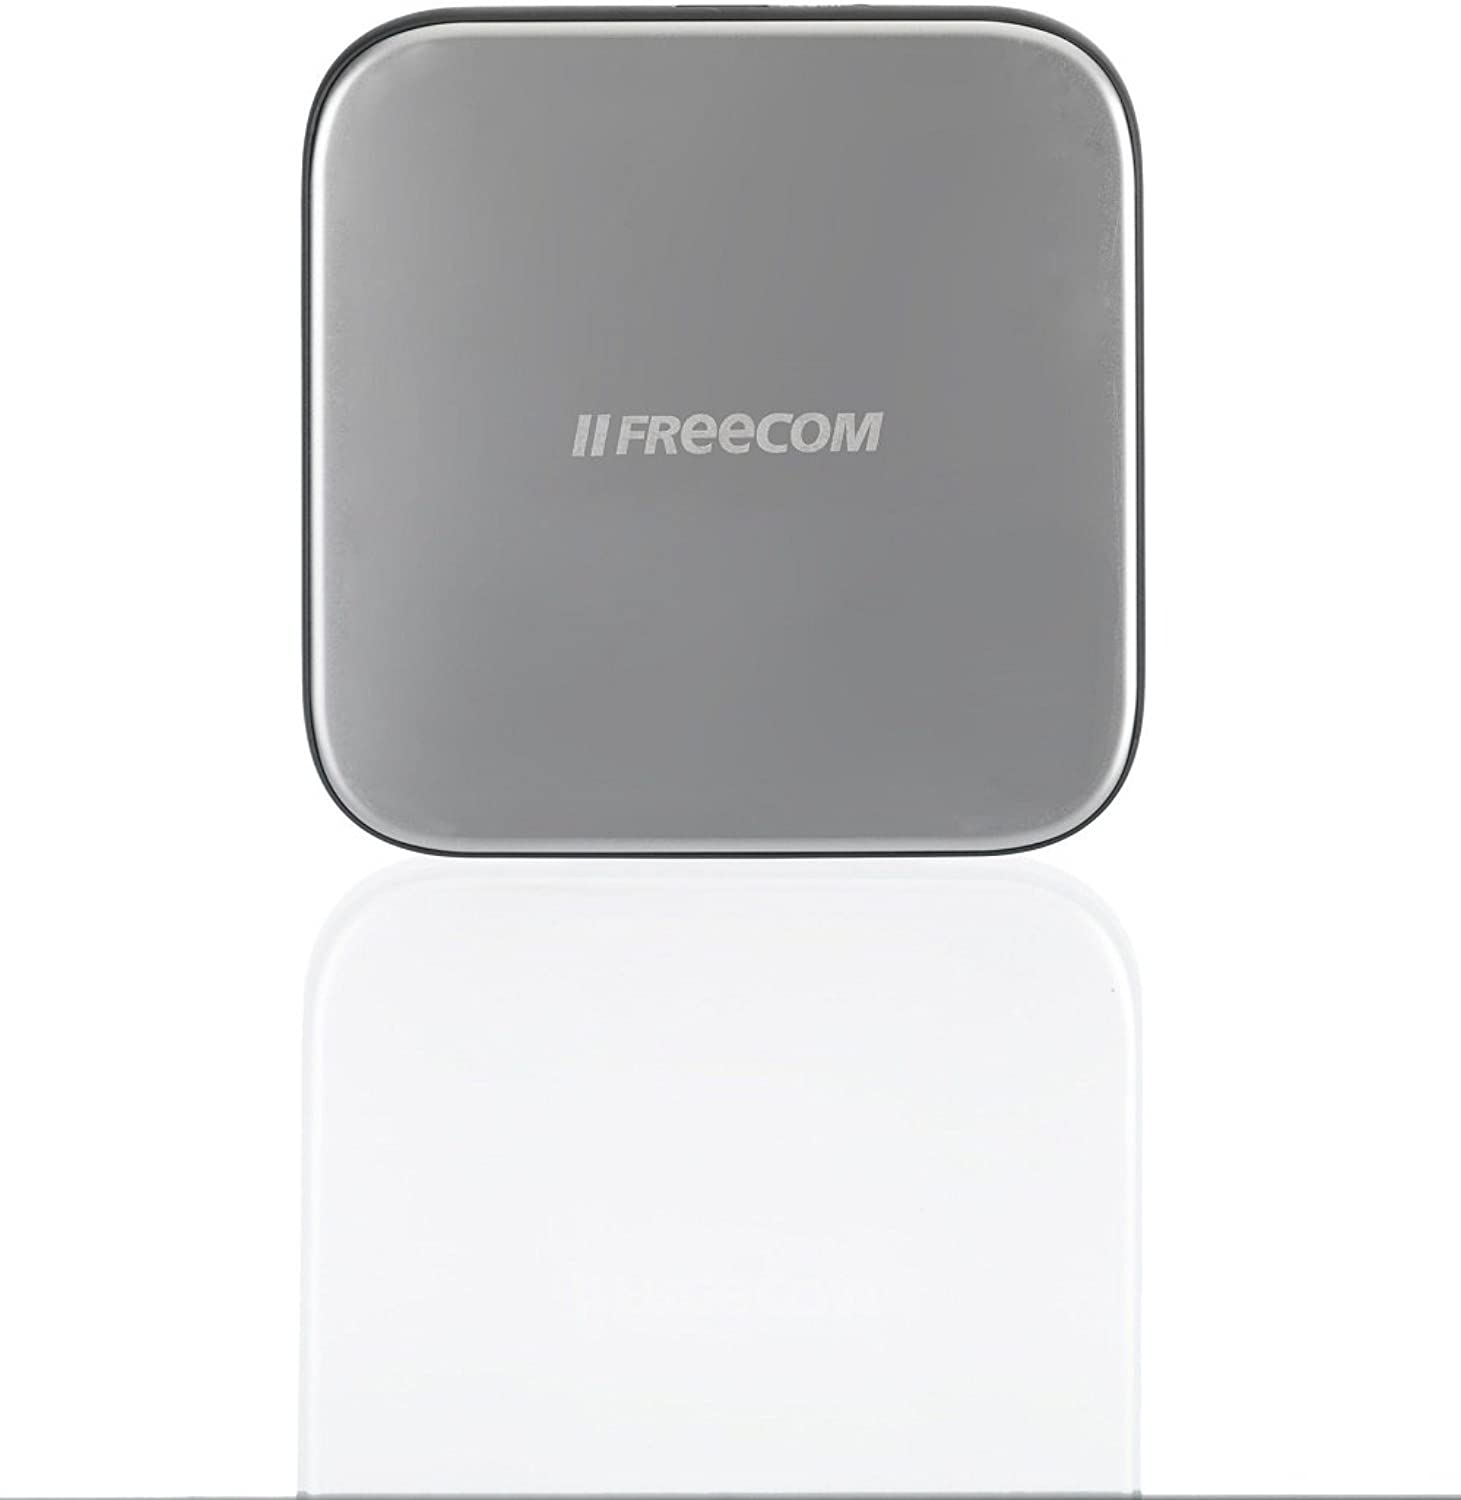 Verbatim Freecom Mobile Hard Drive Sq 1 TB USB 3.0 97806